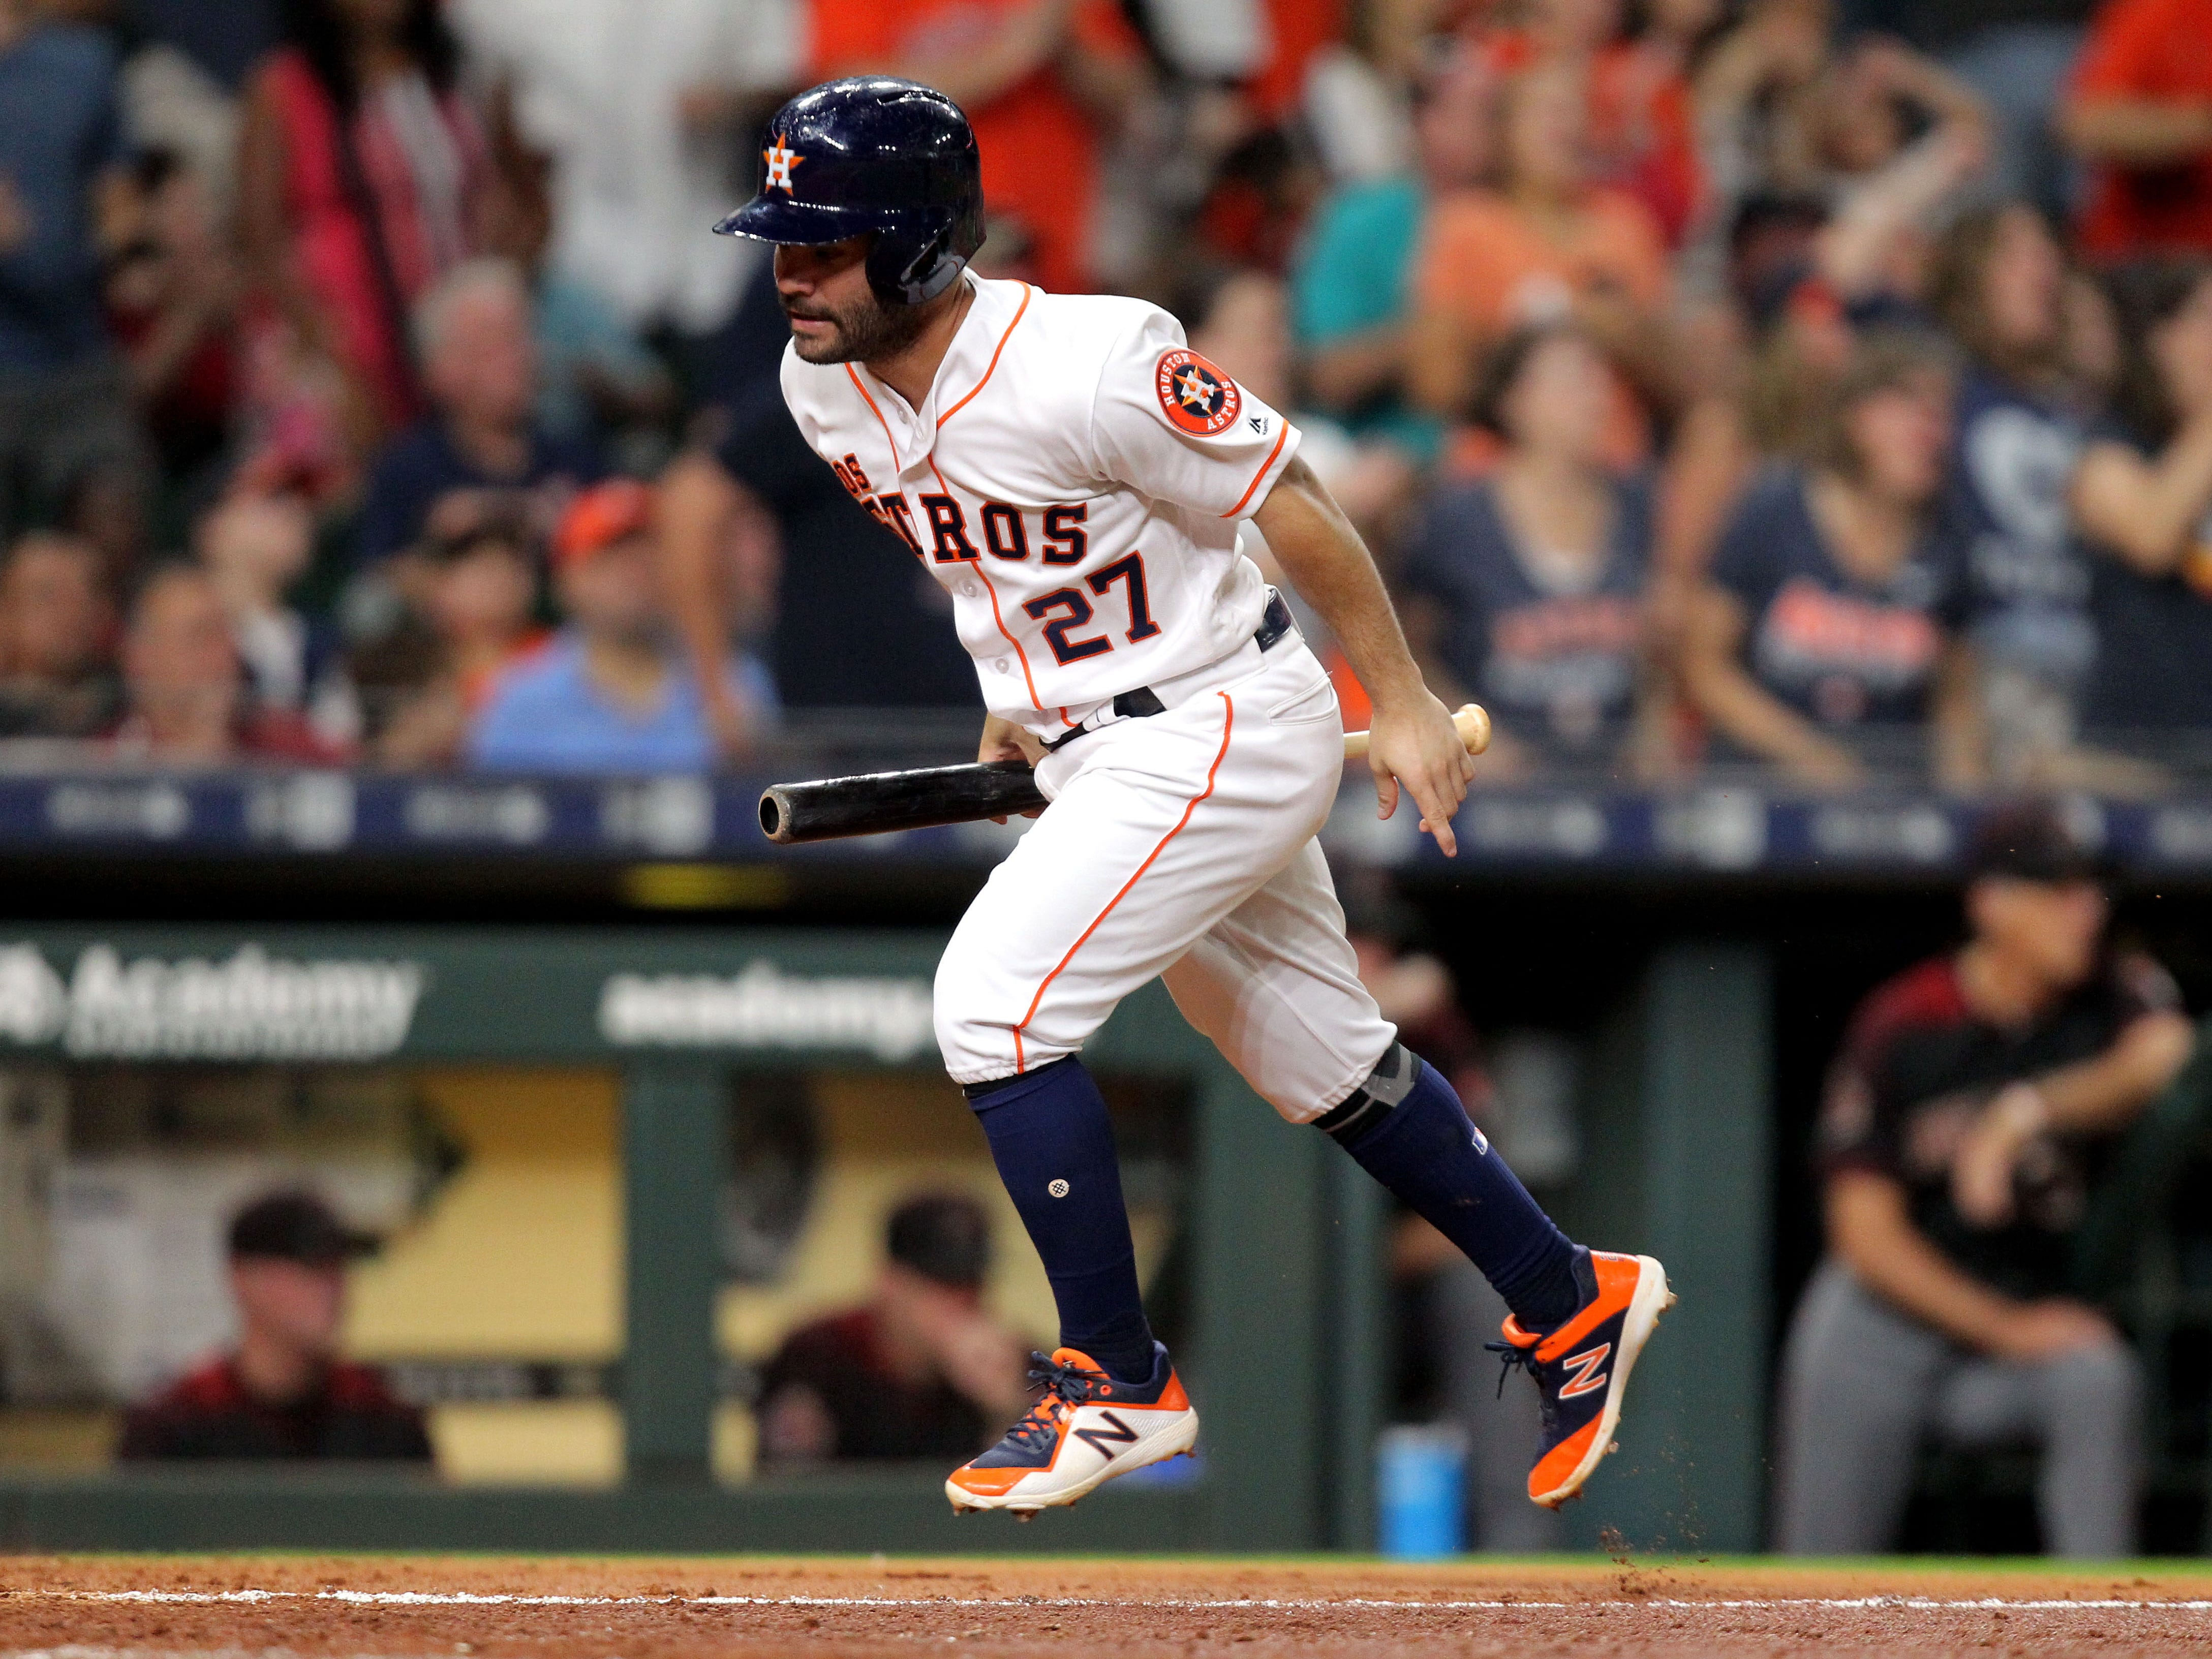 Sep 15, 2018; Houston, TX, USA; Houston Astros second baseman Jose Altuve (27) runs home to score a run against the Arizona Diamondbacks during the sixth inning at Minute Maid Park. Mandatory Credit: Erik Williams-USA TODAY Sports